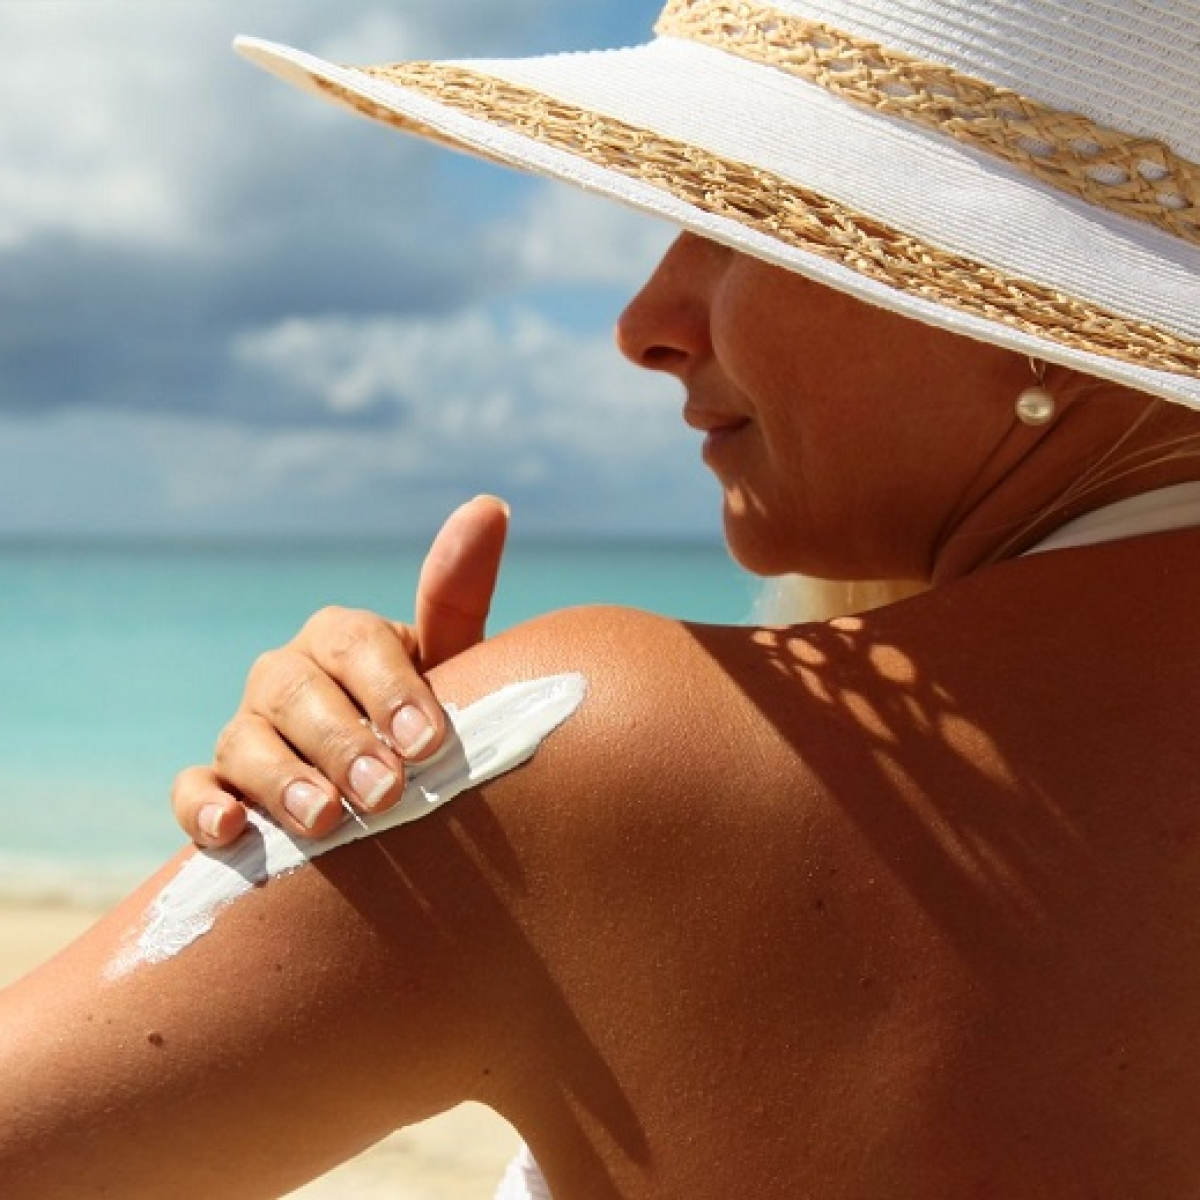 Ingredients in sunscreen can damage freshwater ecosystems